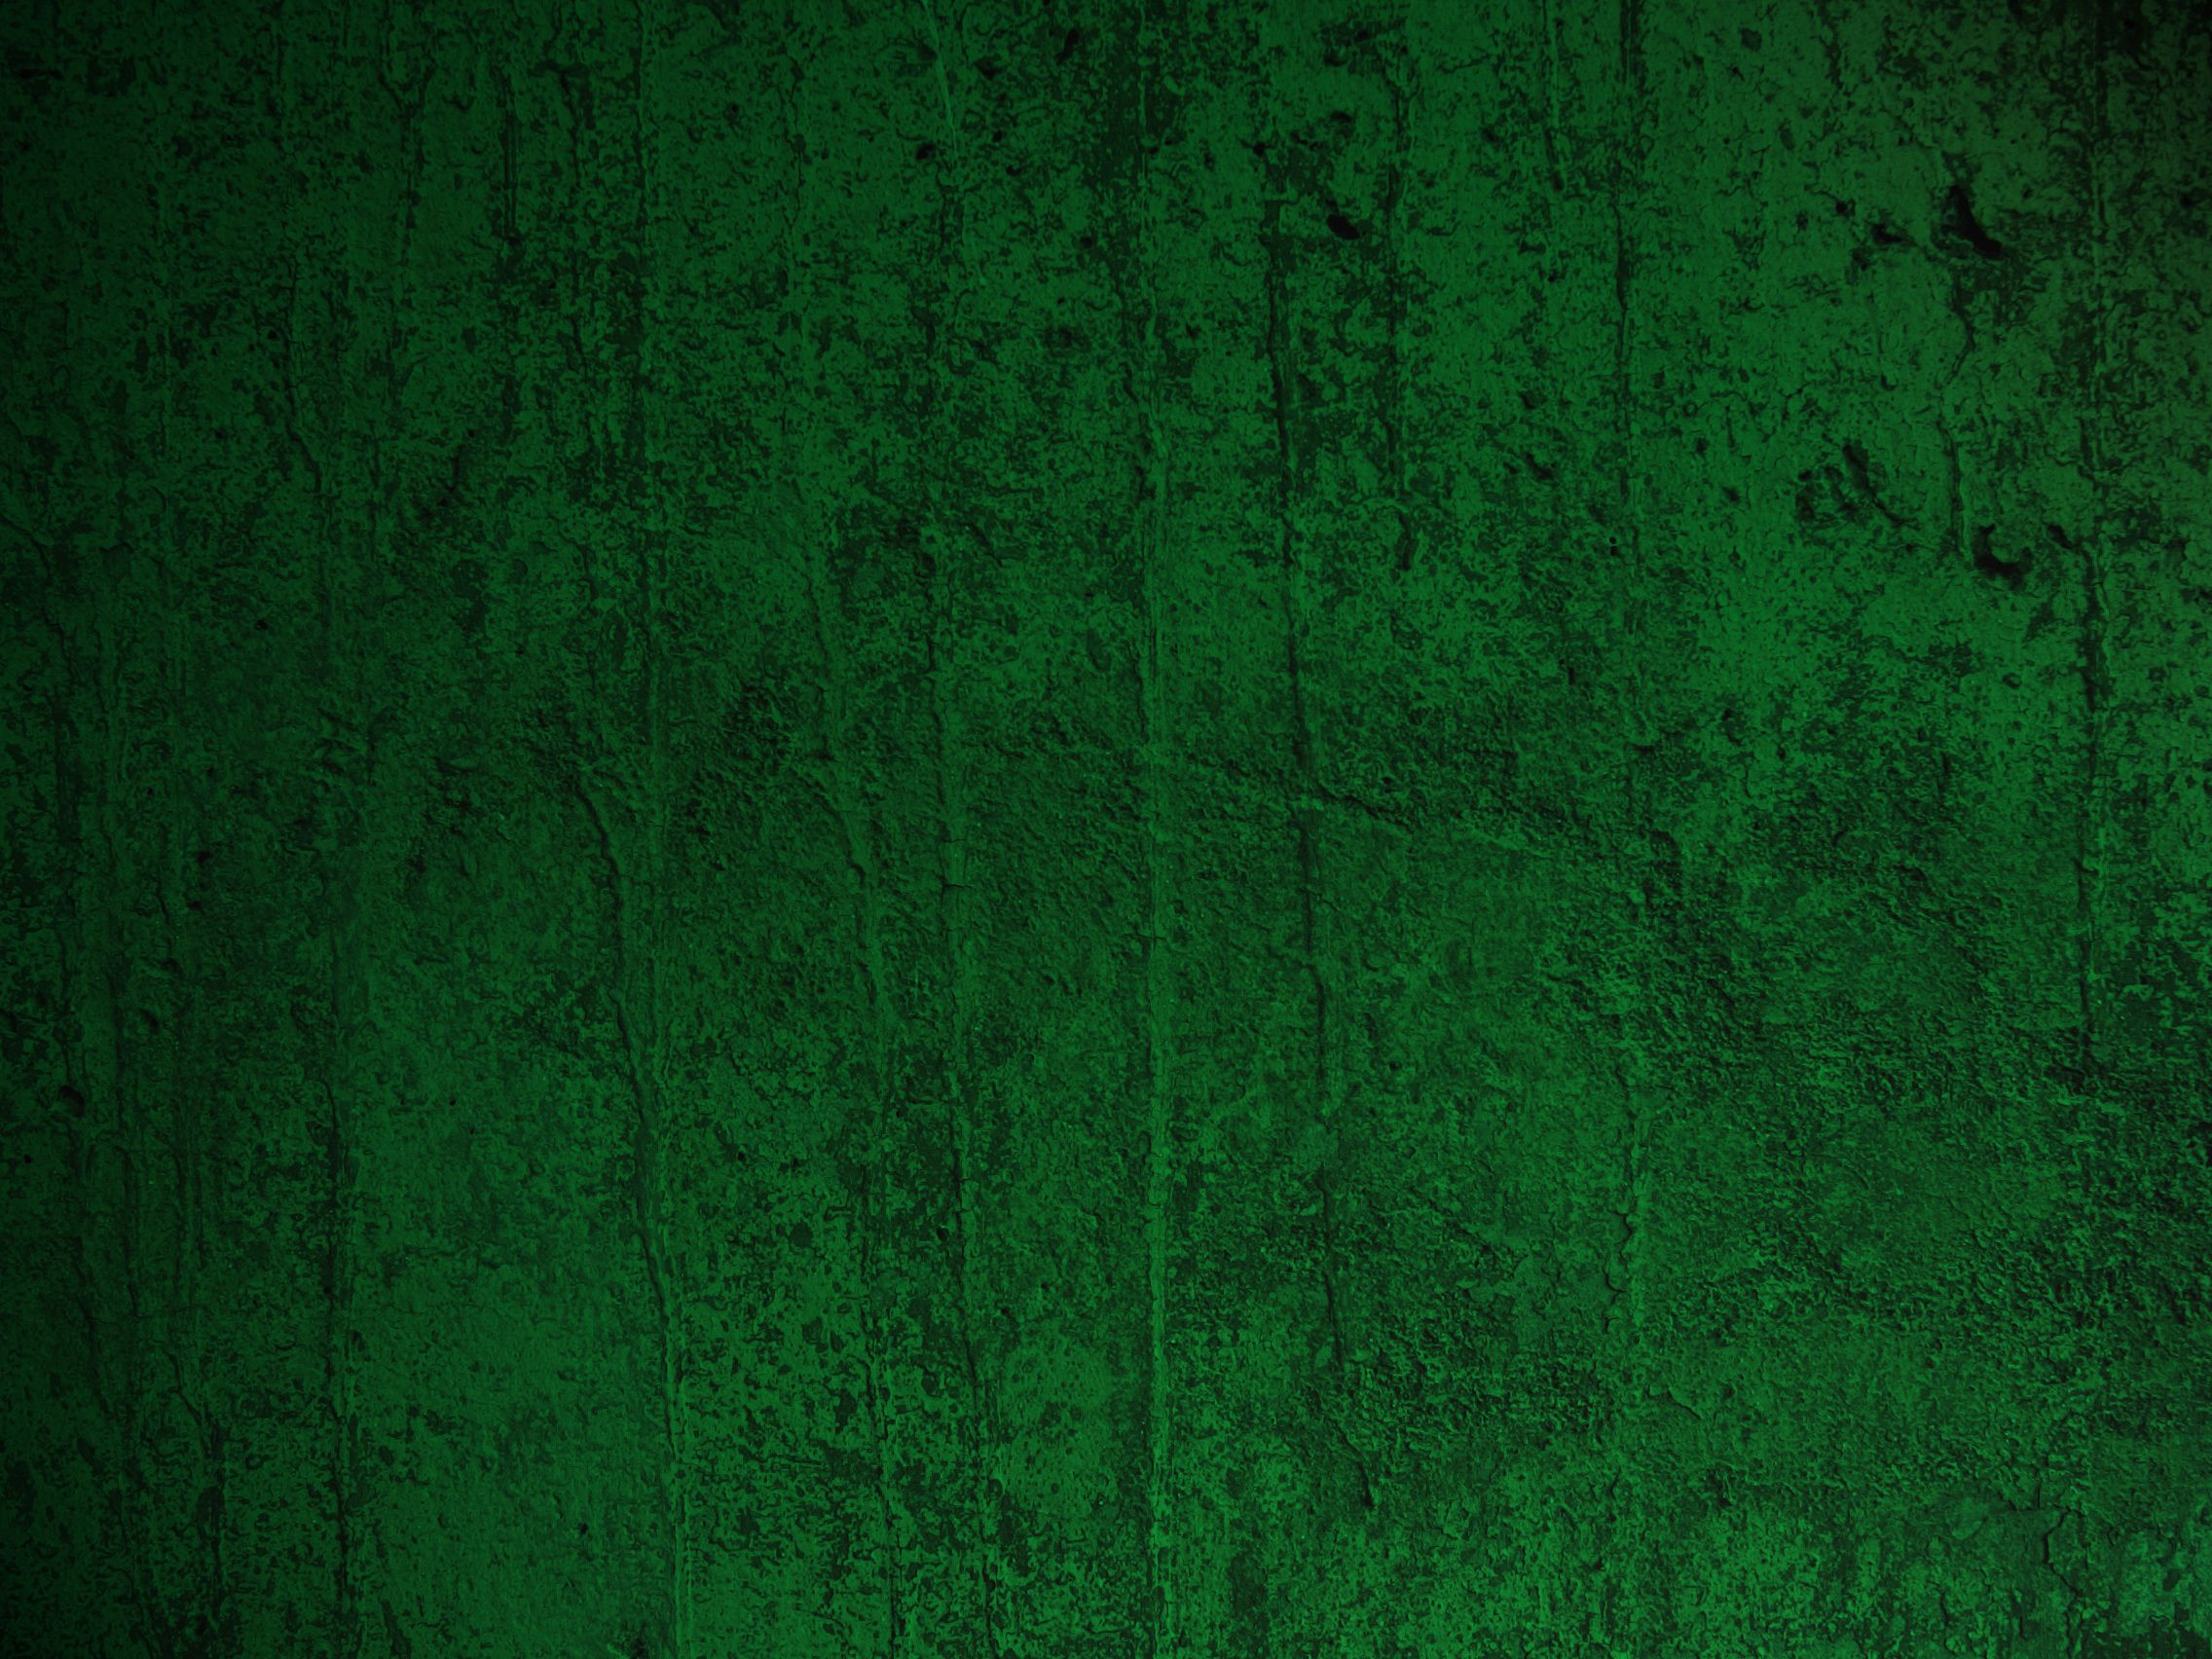 Green Background Vectors Photos and PSD files Free